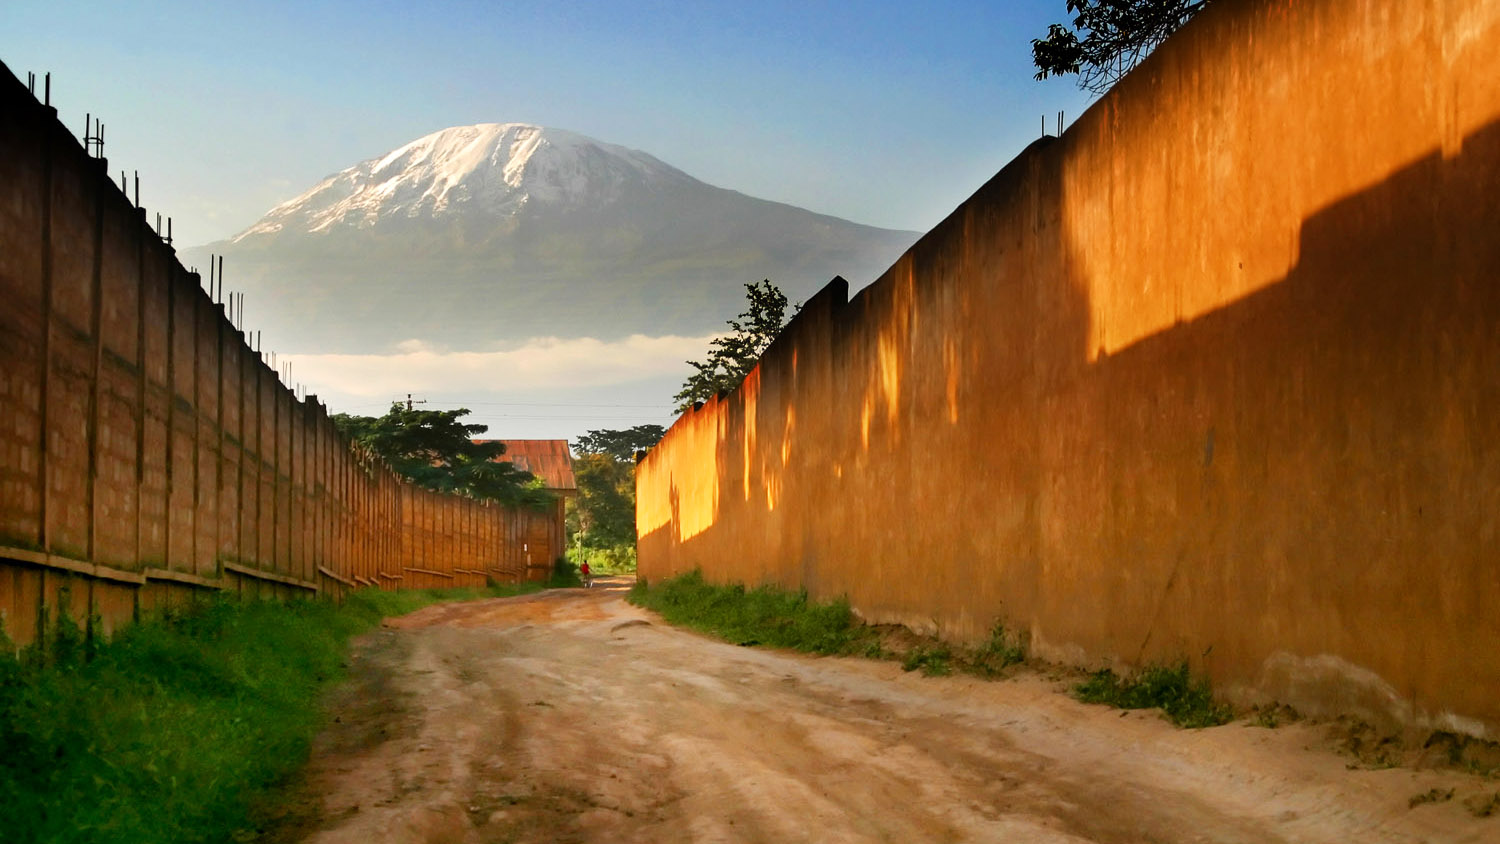 My first trip out of the USA! Shot on Canon D60. Mount Kilimanjaro from Moshi, Tanzania, 2006